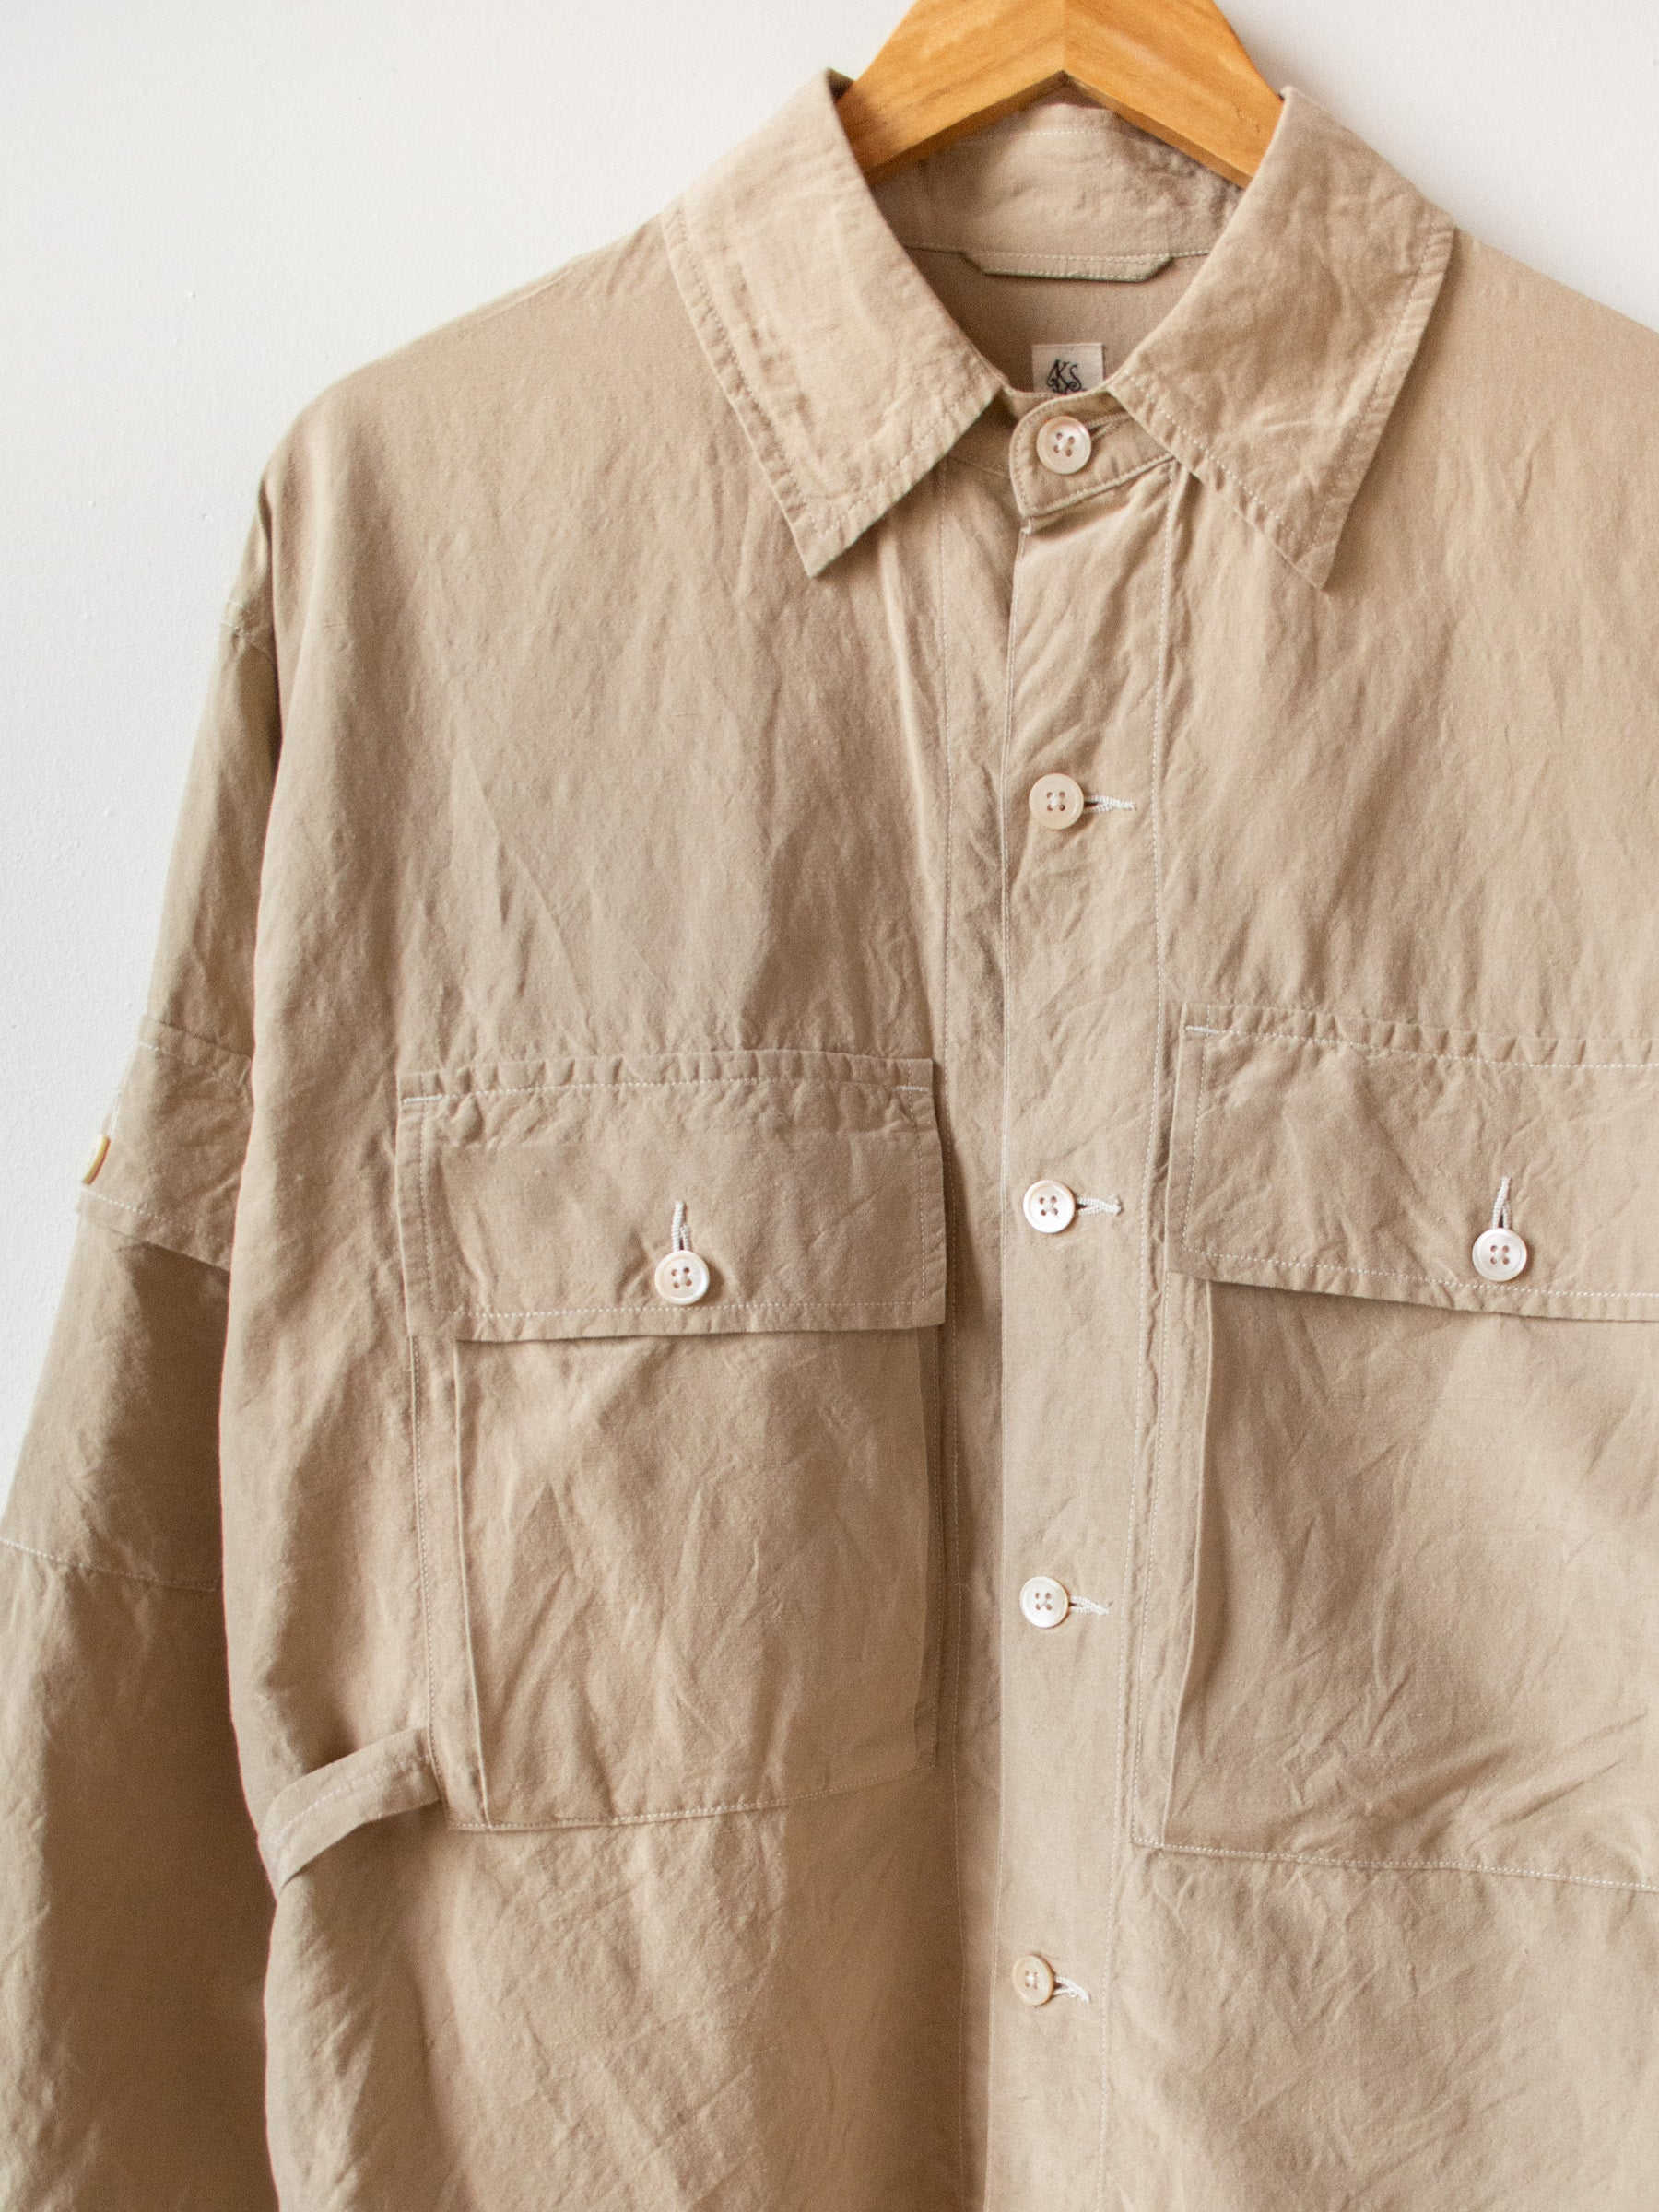 Washed Silk Linen Field Shirt Jacket - Beige